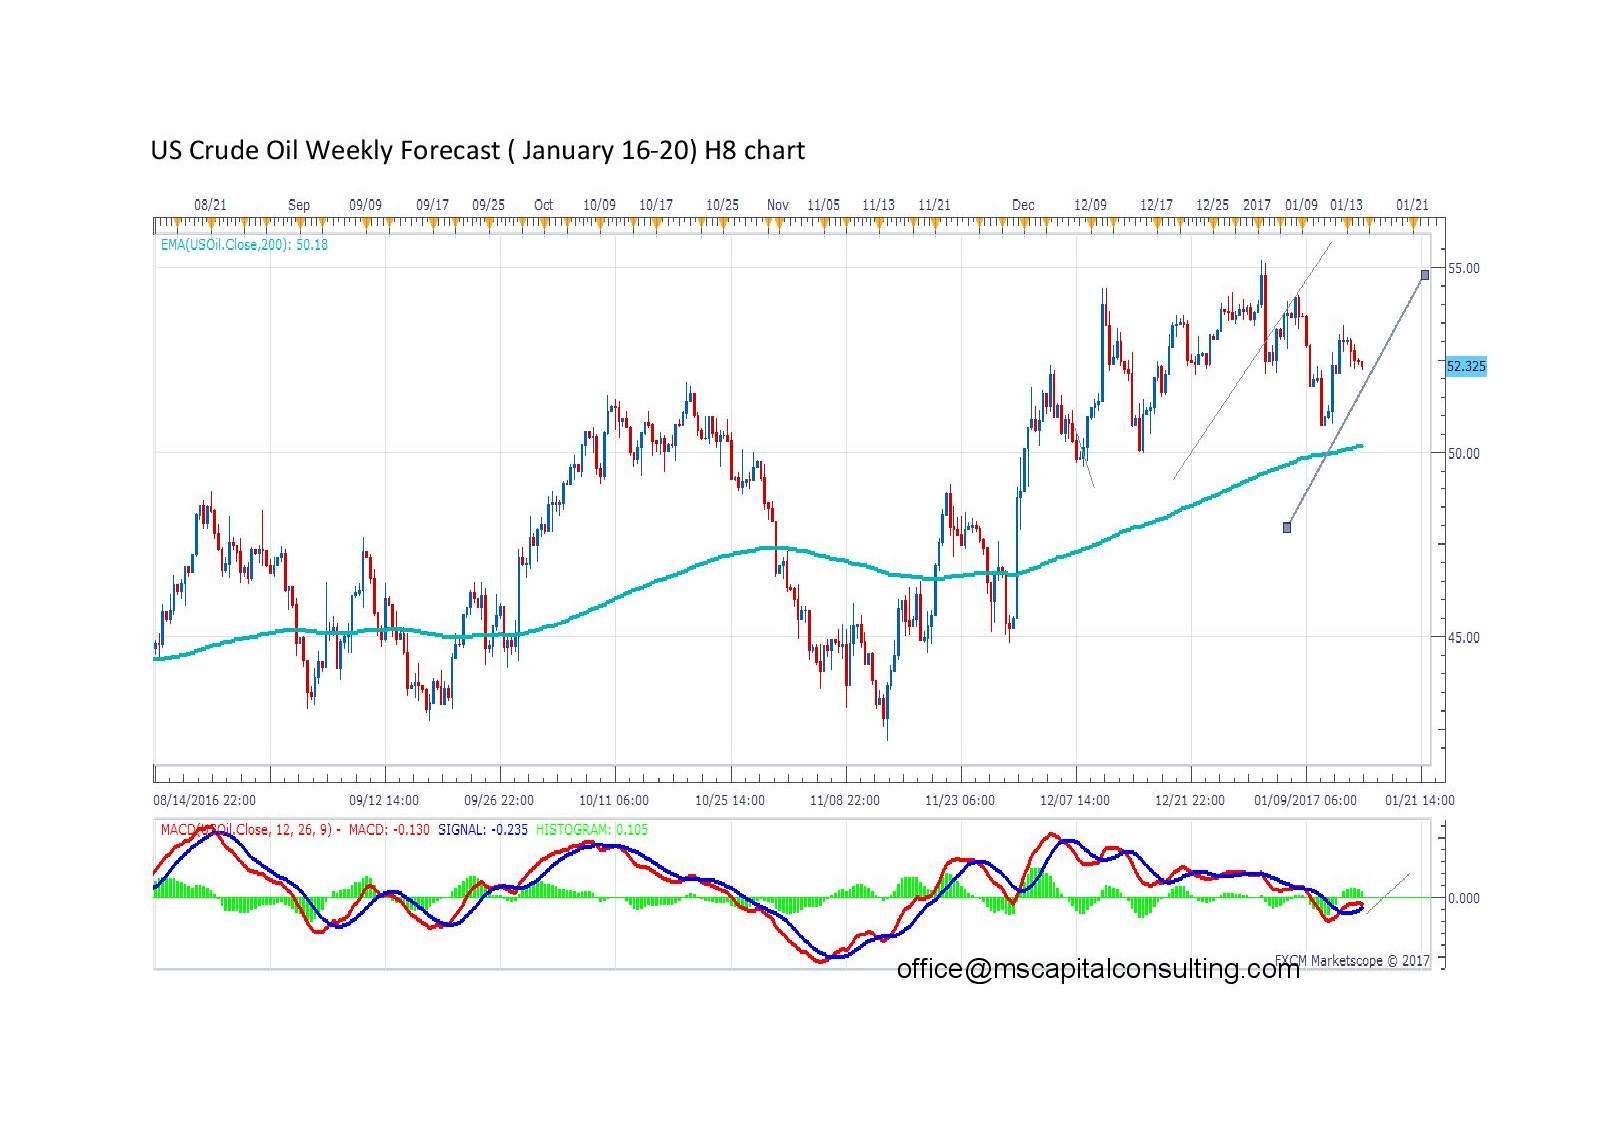 US Crude Oil Weekly Forecast page 001